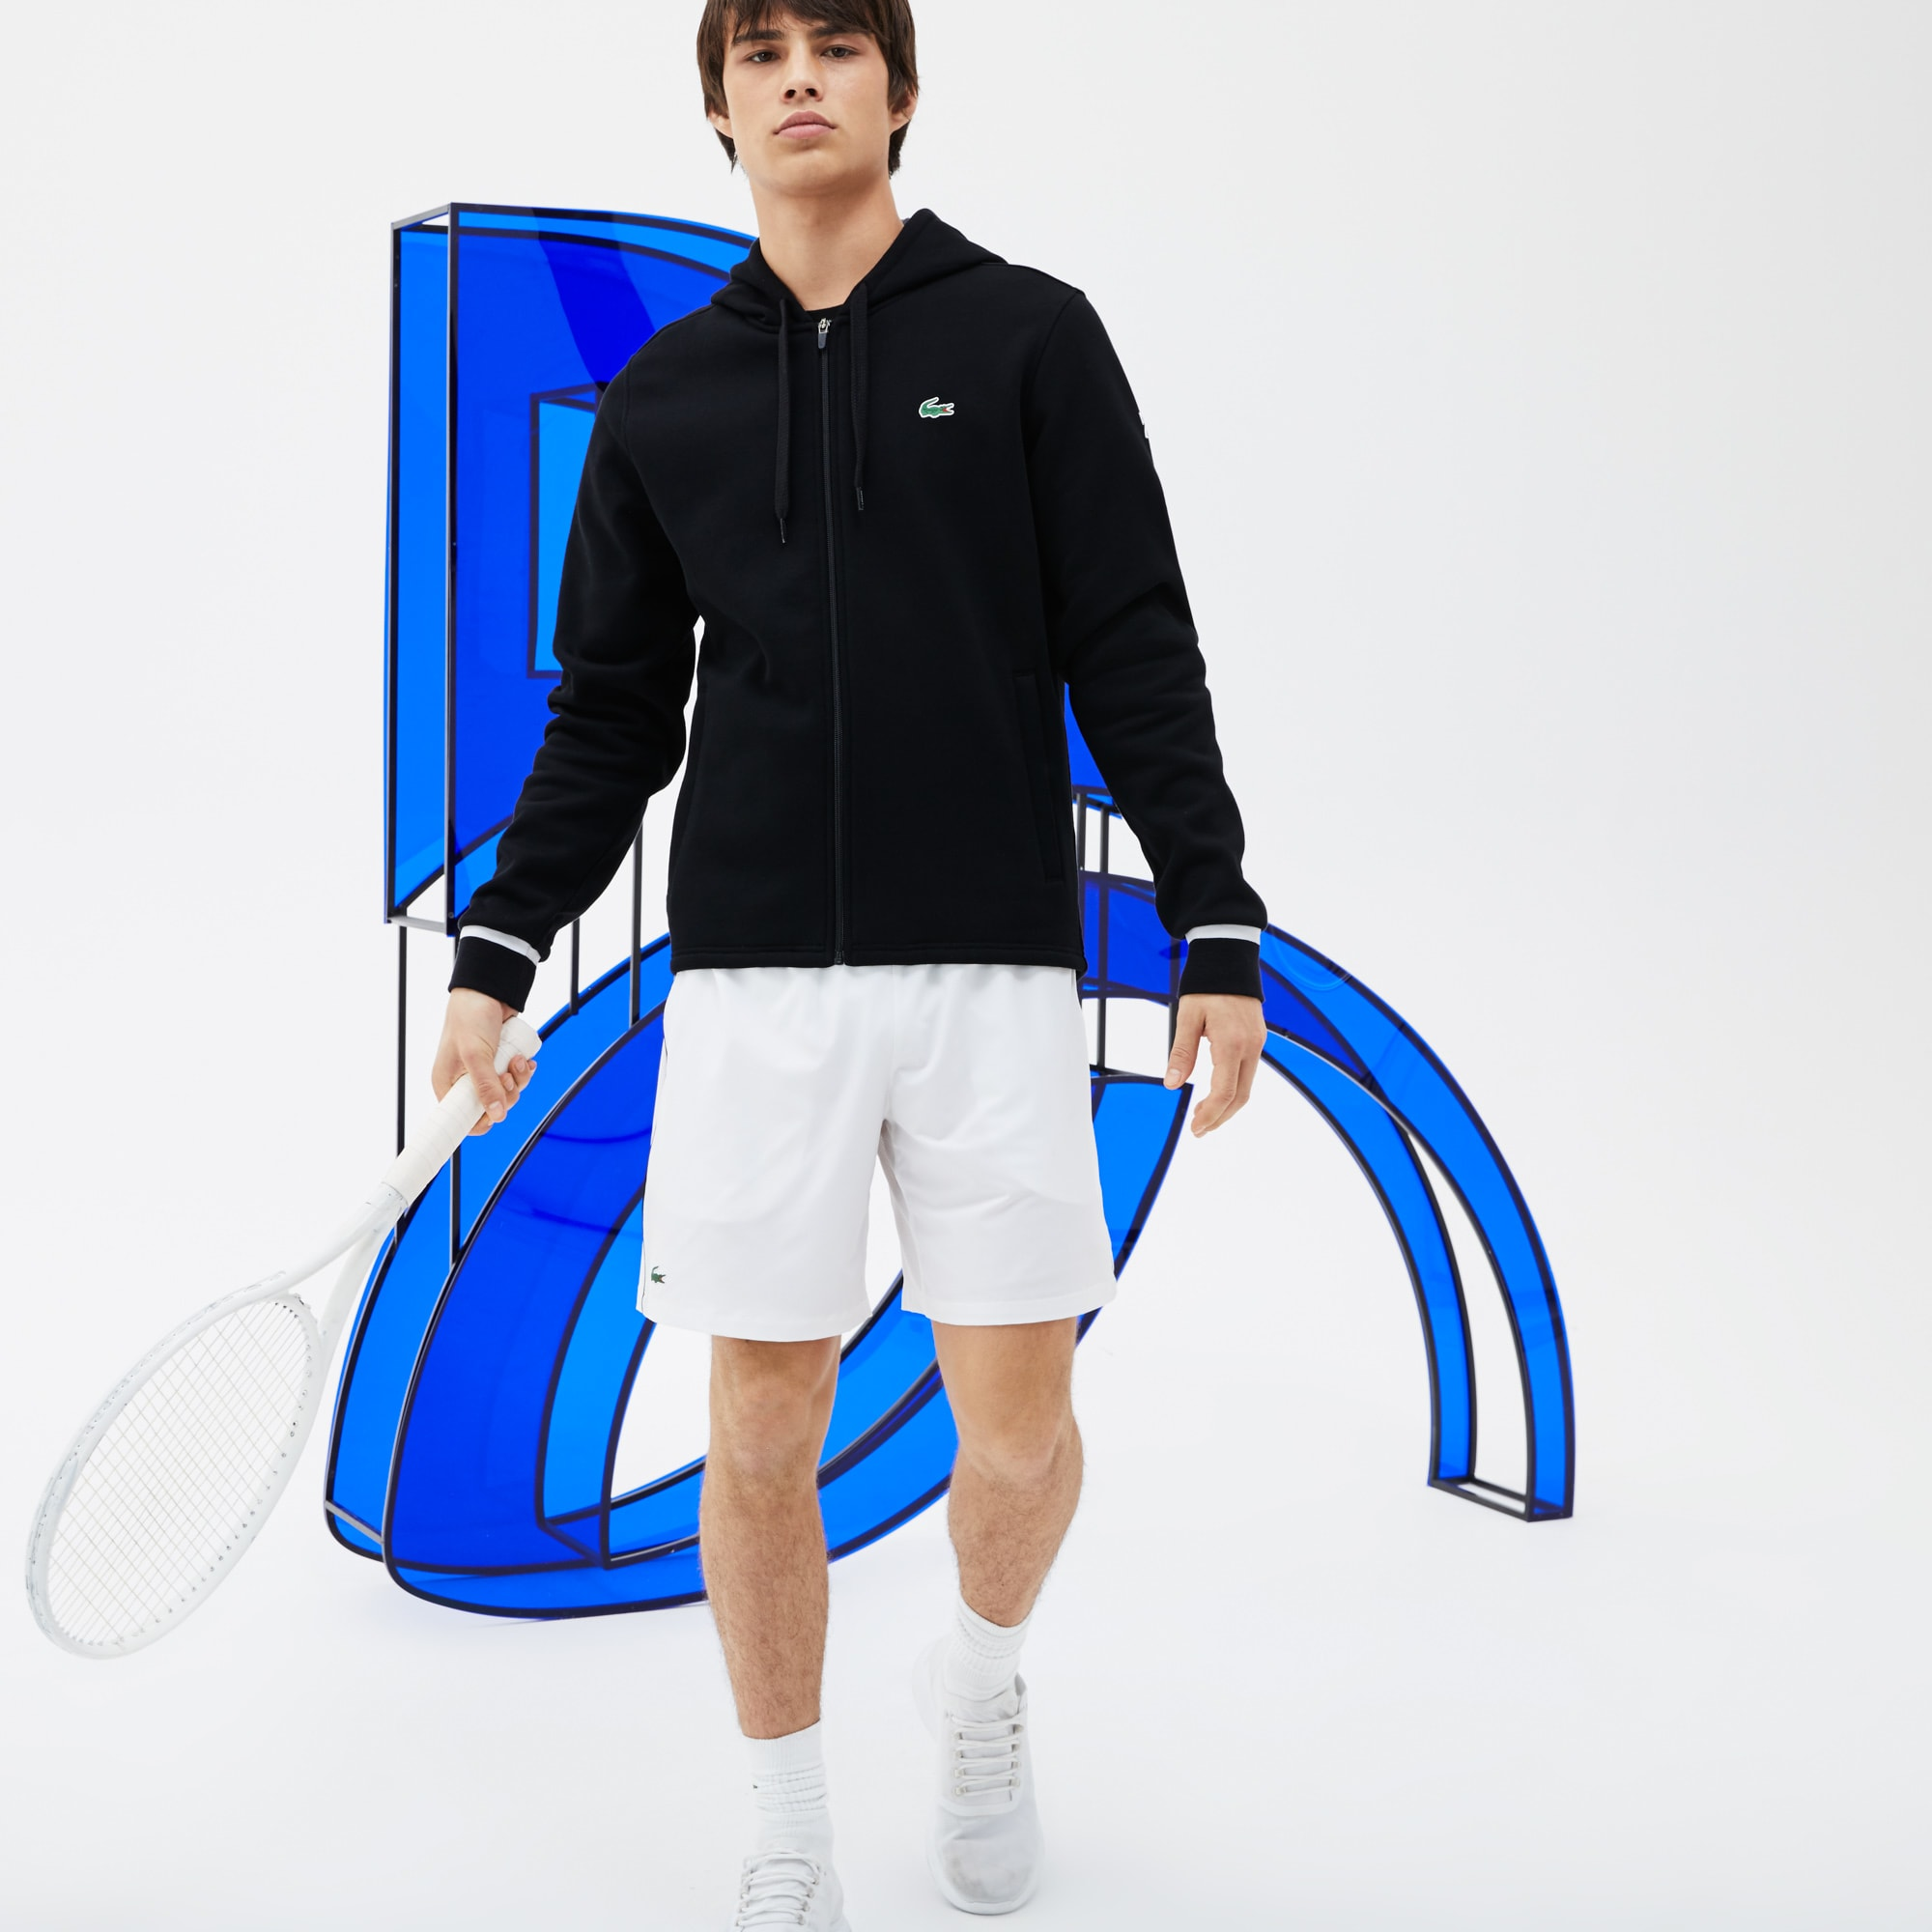 Sweatshirt zippé à capuche Lacoste SPORT COLLECTION NOVAK DJOKOVIC SUPPORT WITH STYLE en molleton uni